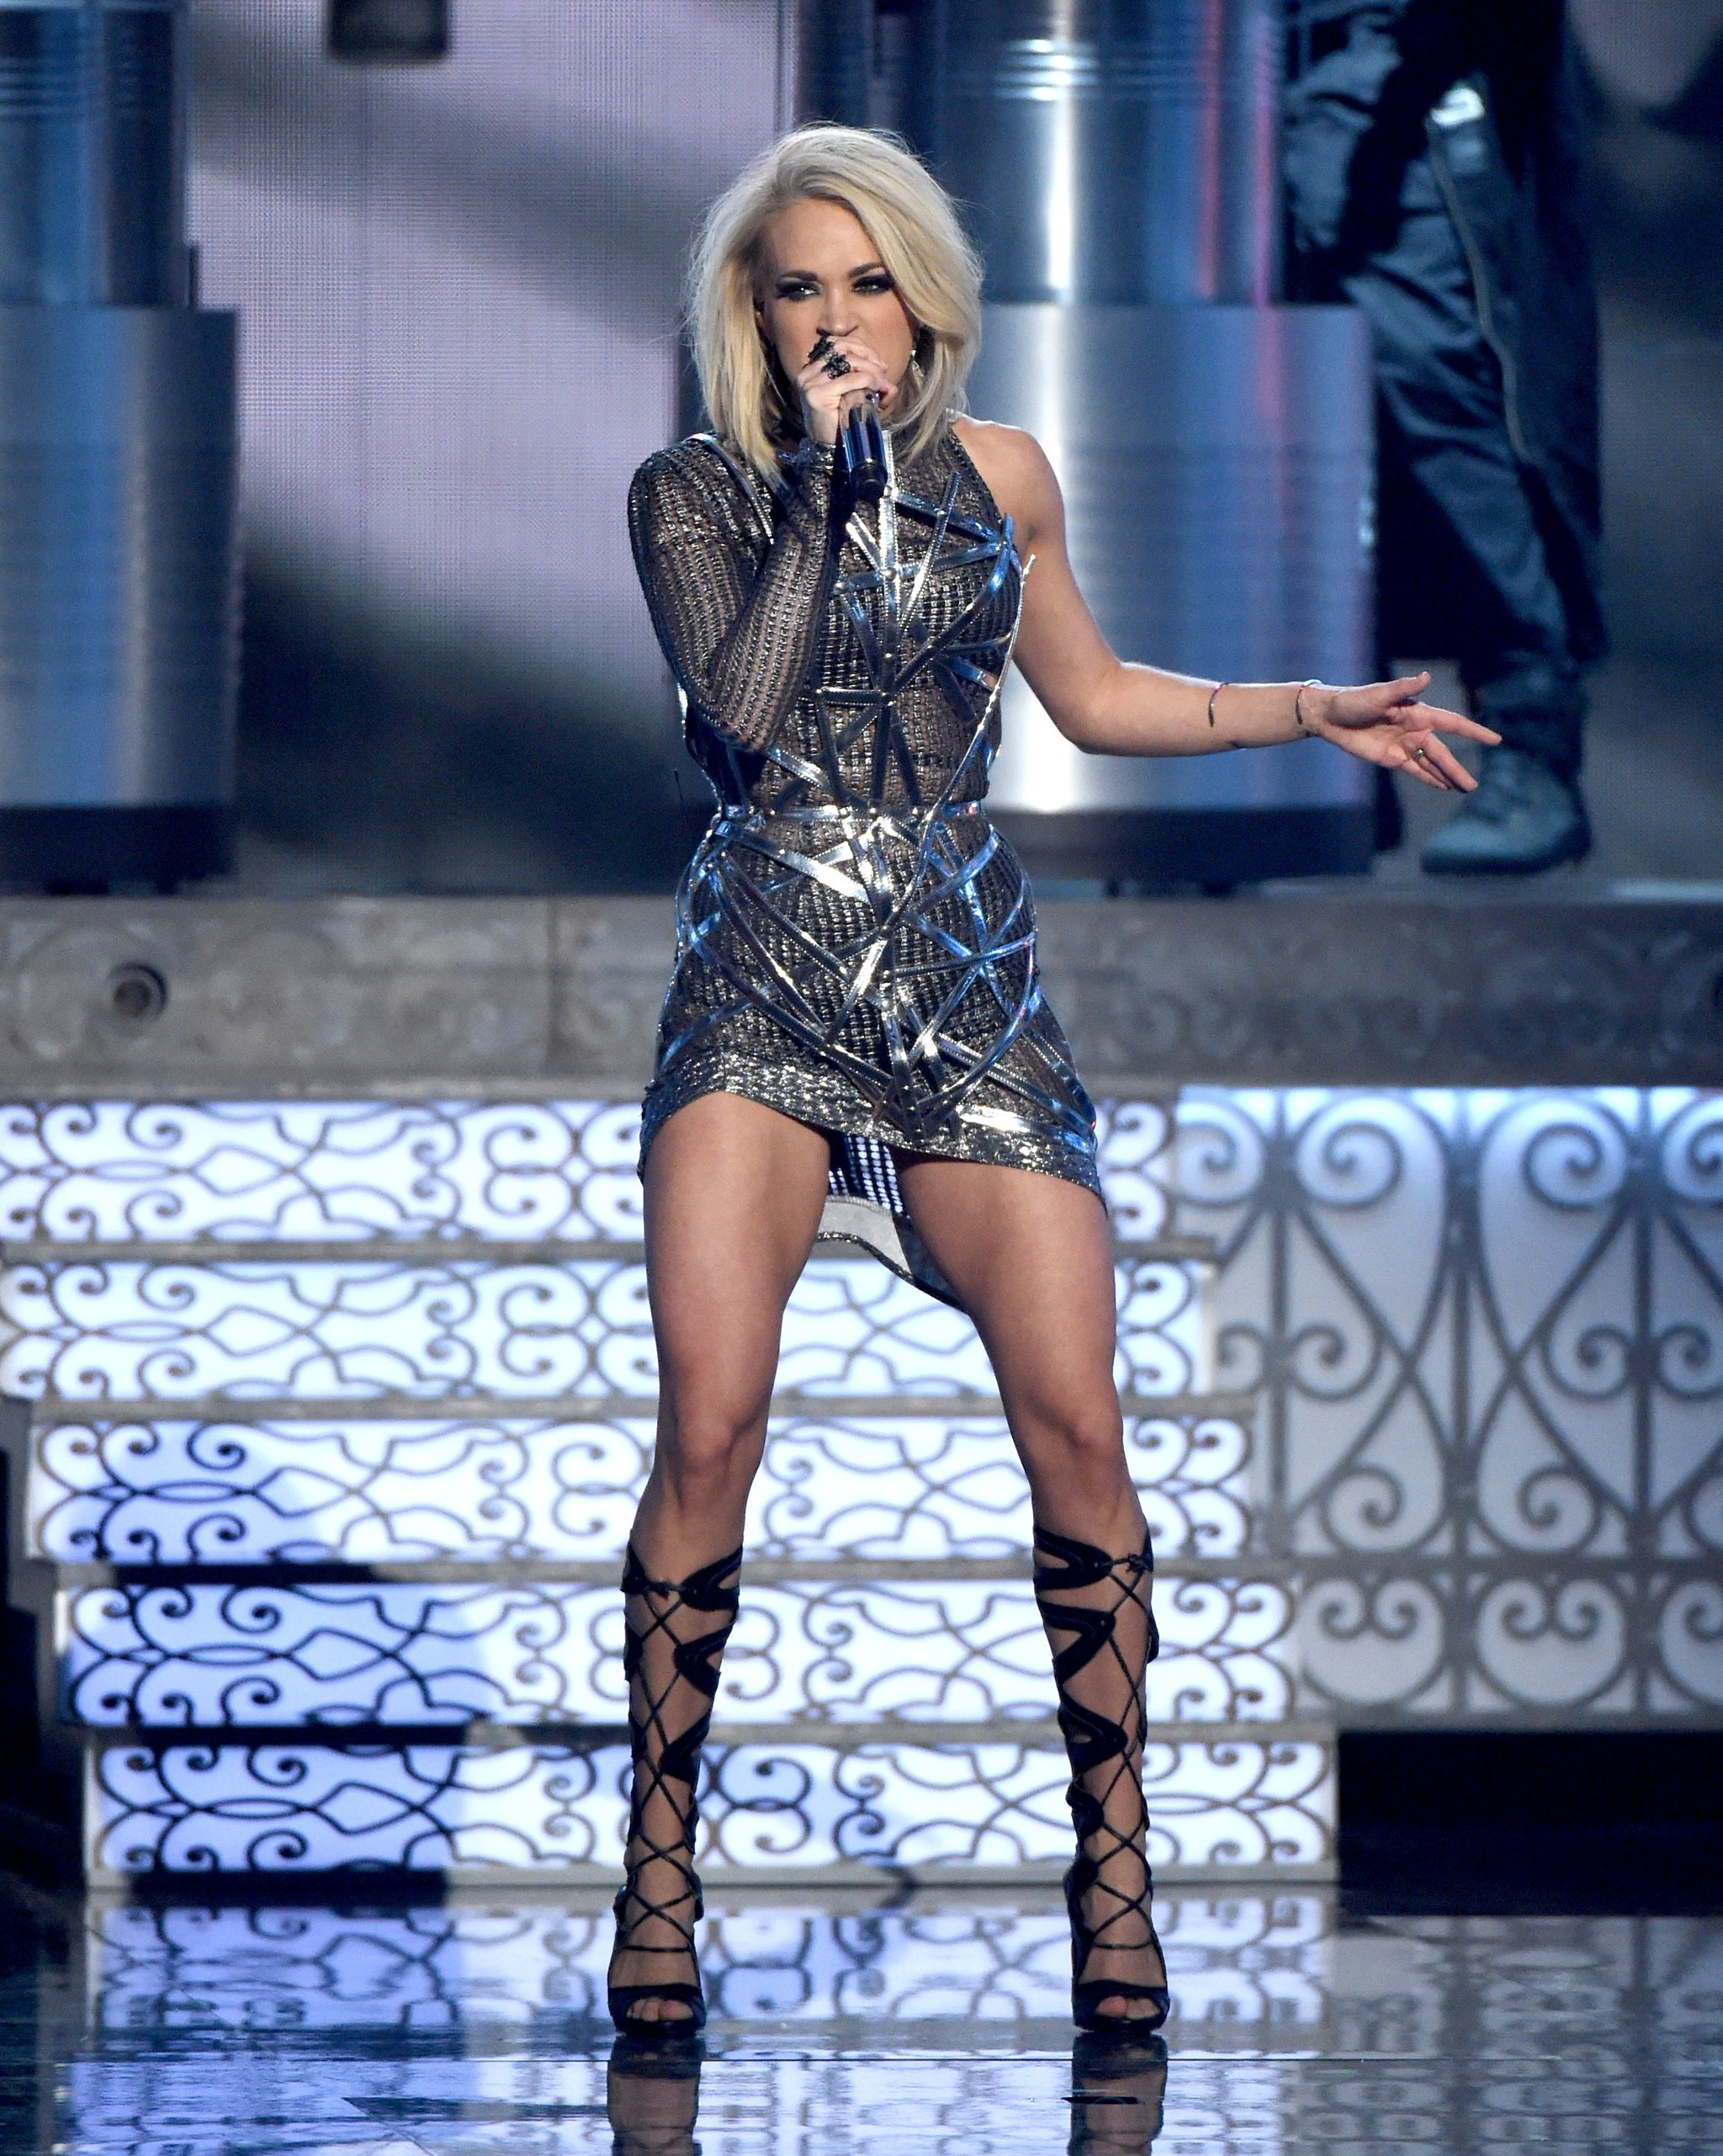 carrie-underwood-performance-dress-acm-awards-2016.jpg